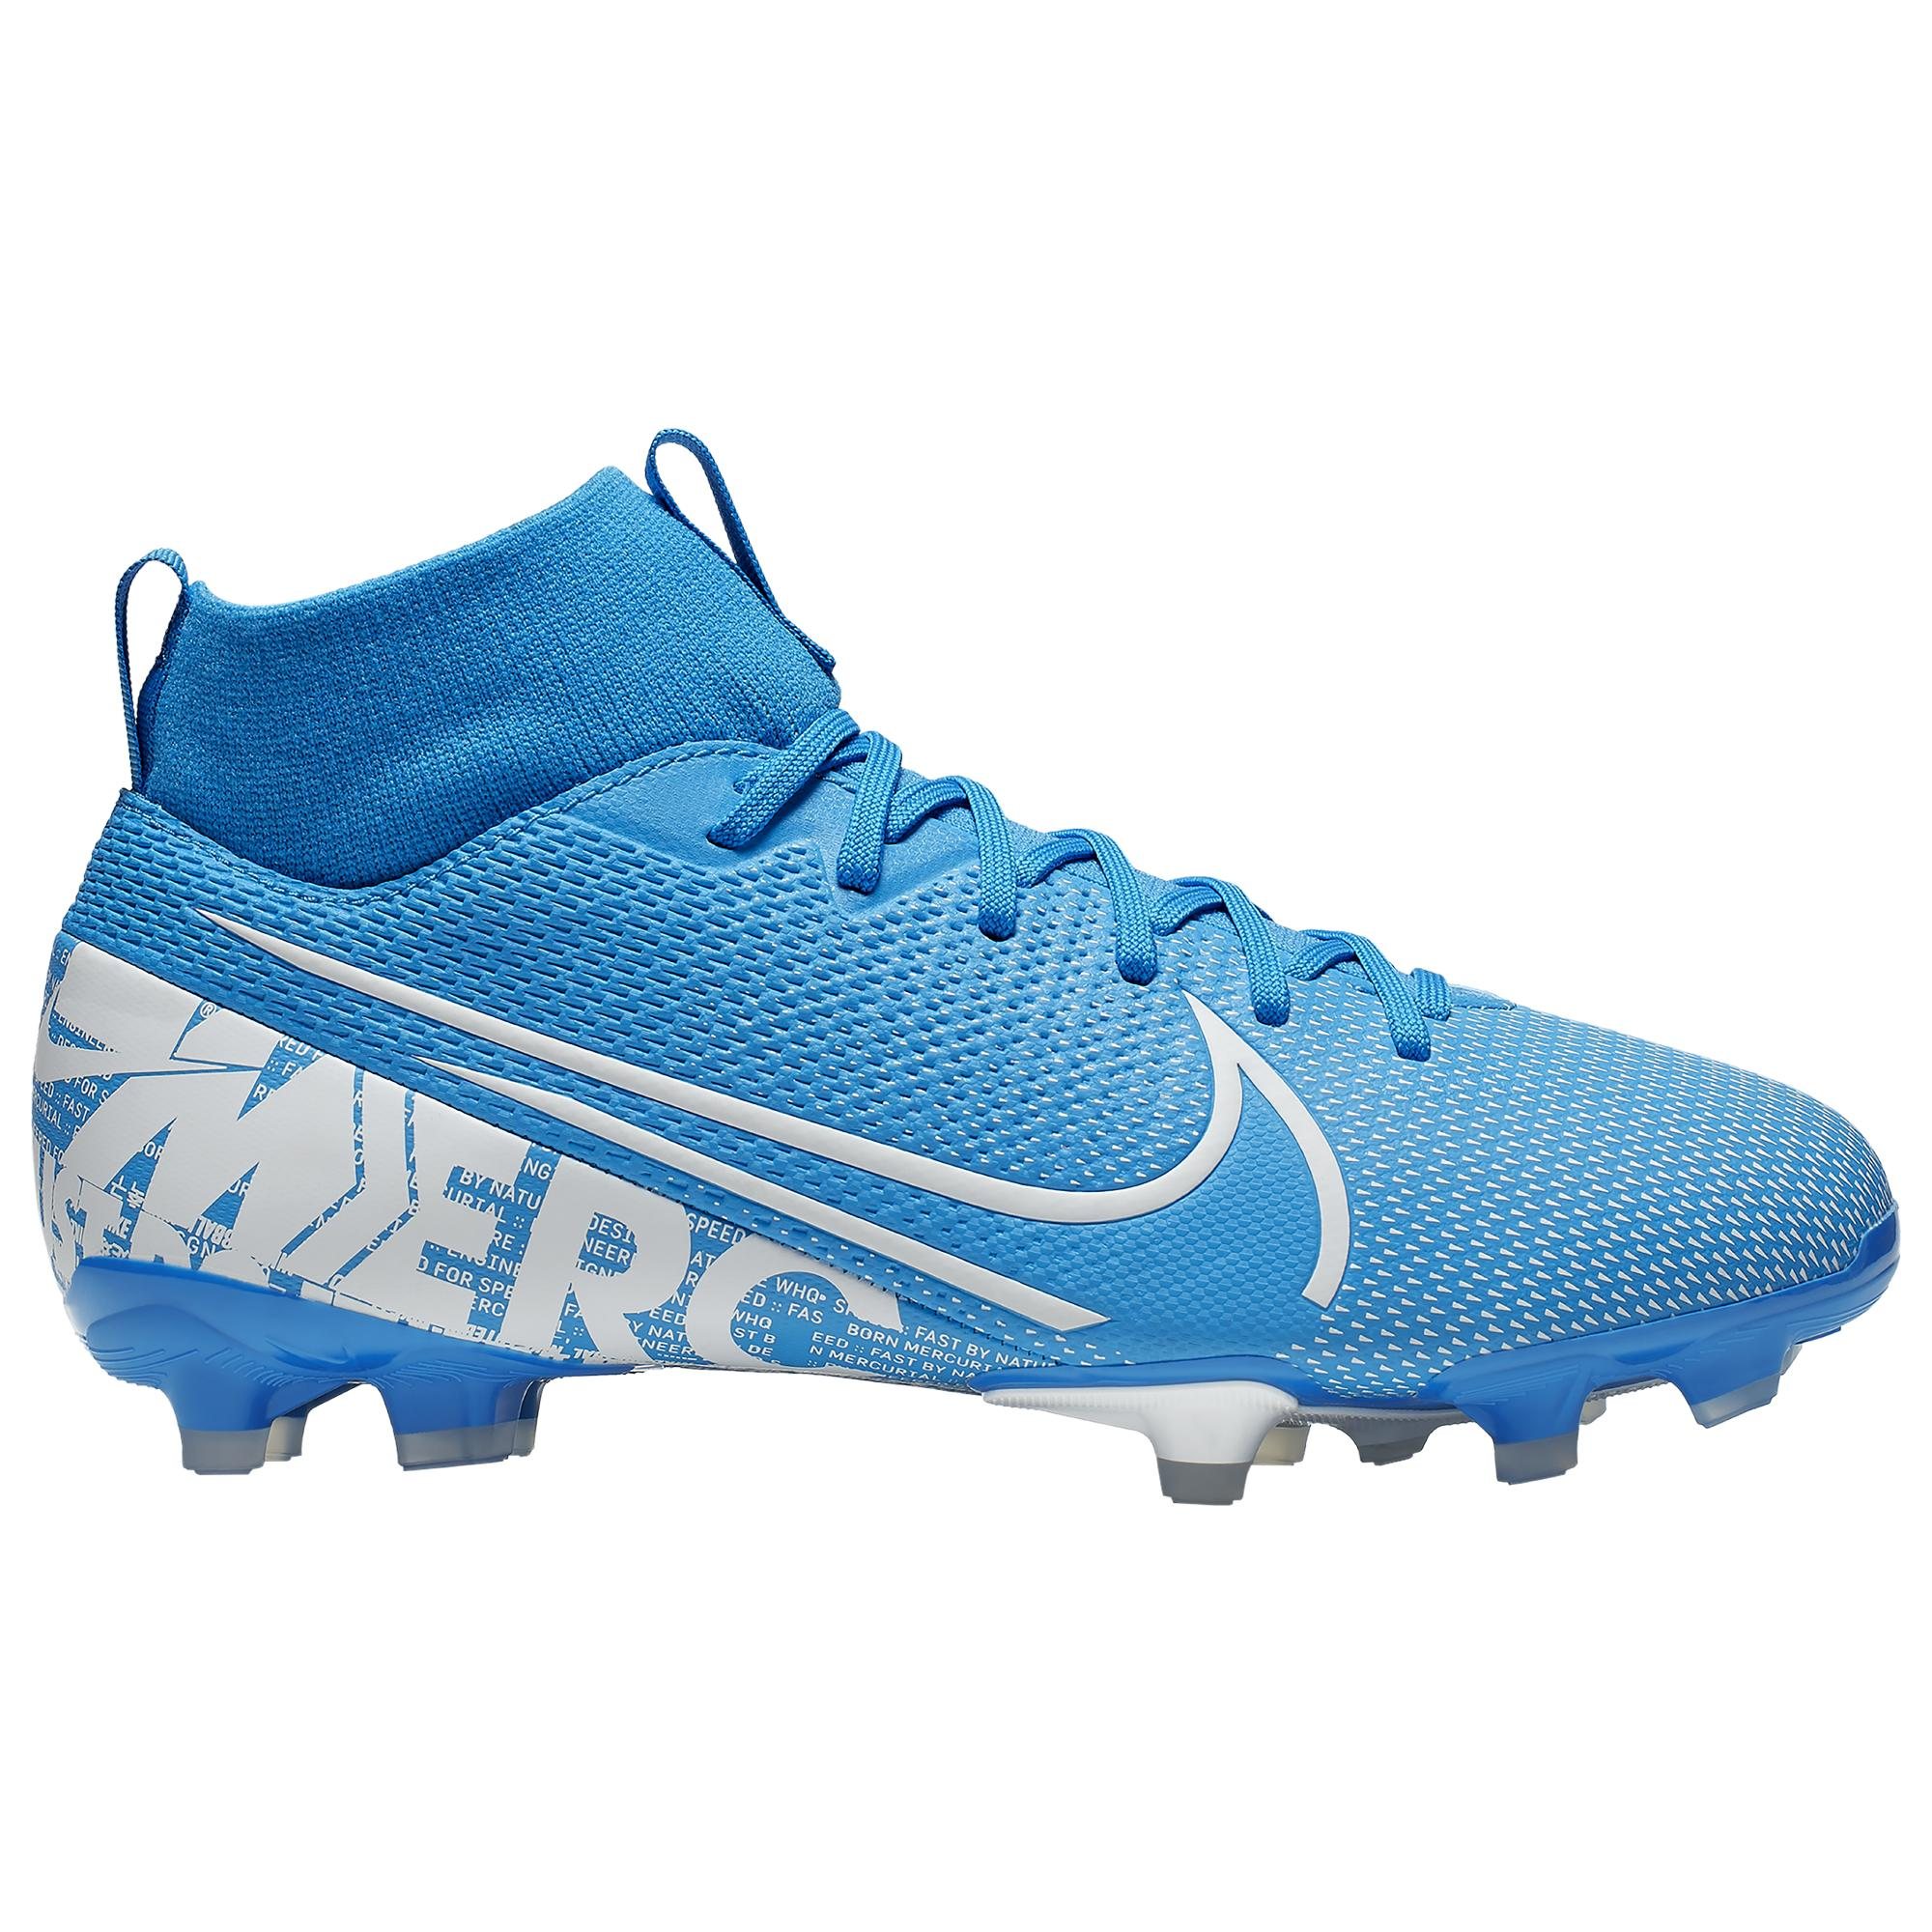 the best attitude 66186 b766d Men's Blue Mercurial Superfly 7 Academy Mg Multi-ground Soccer Cleat